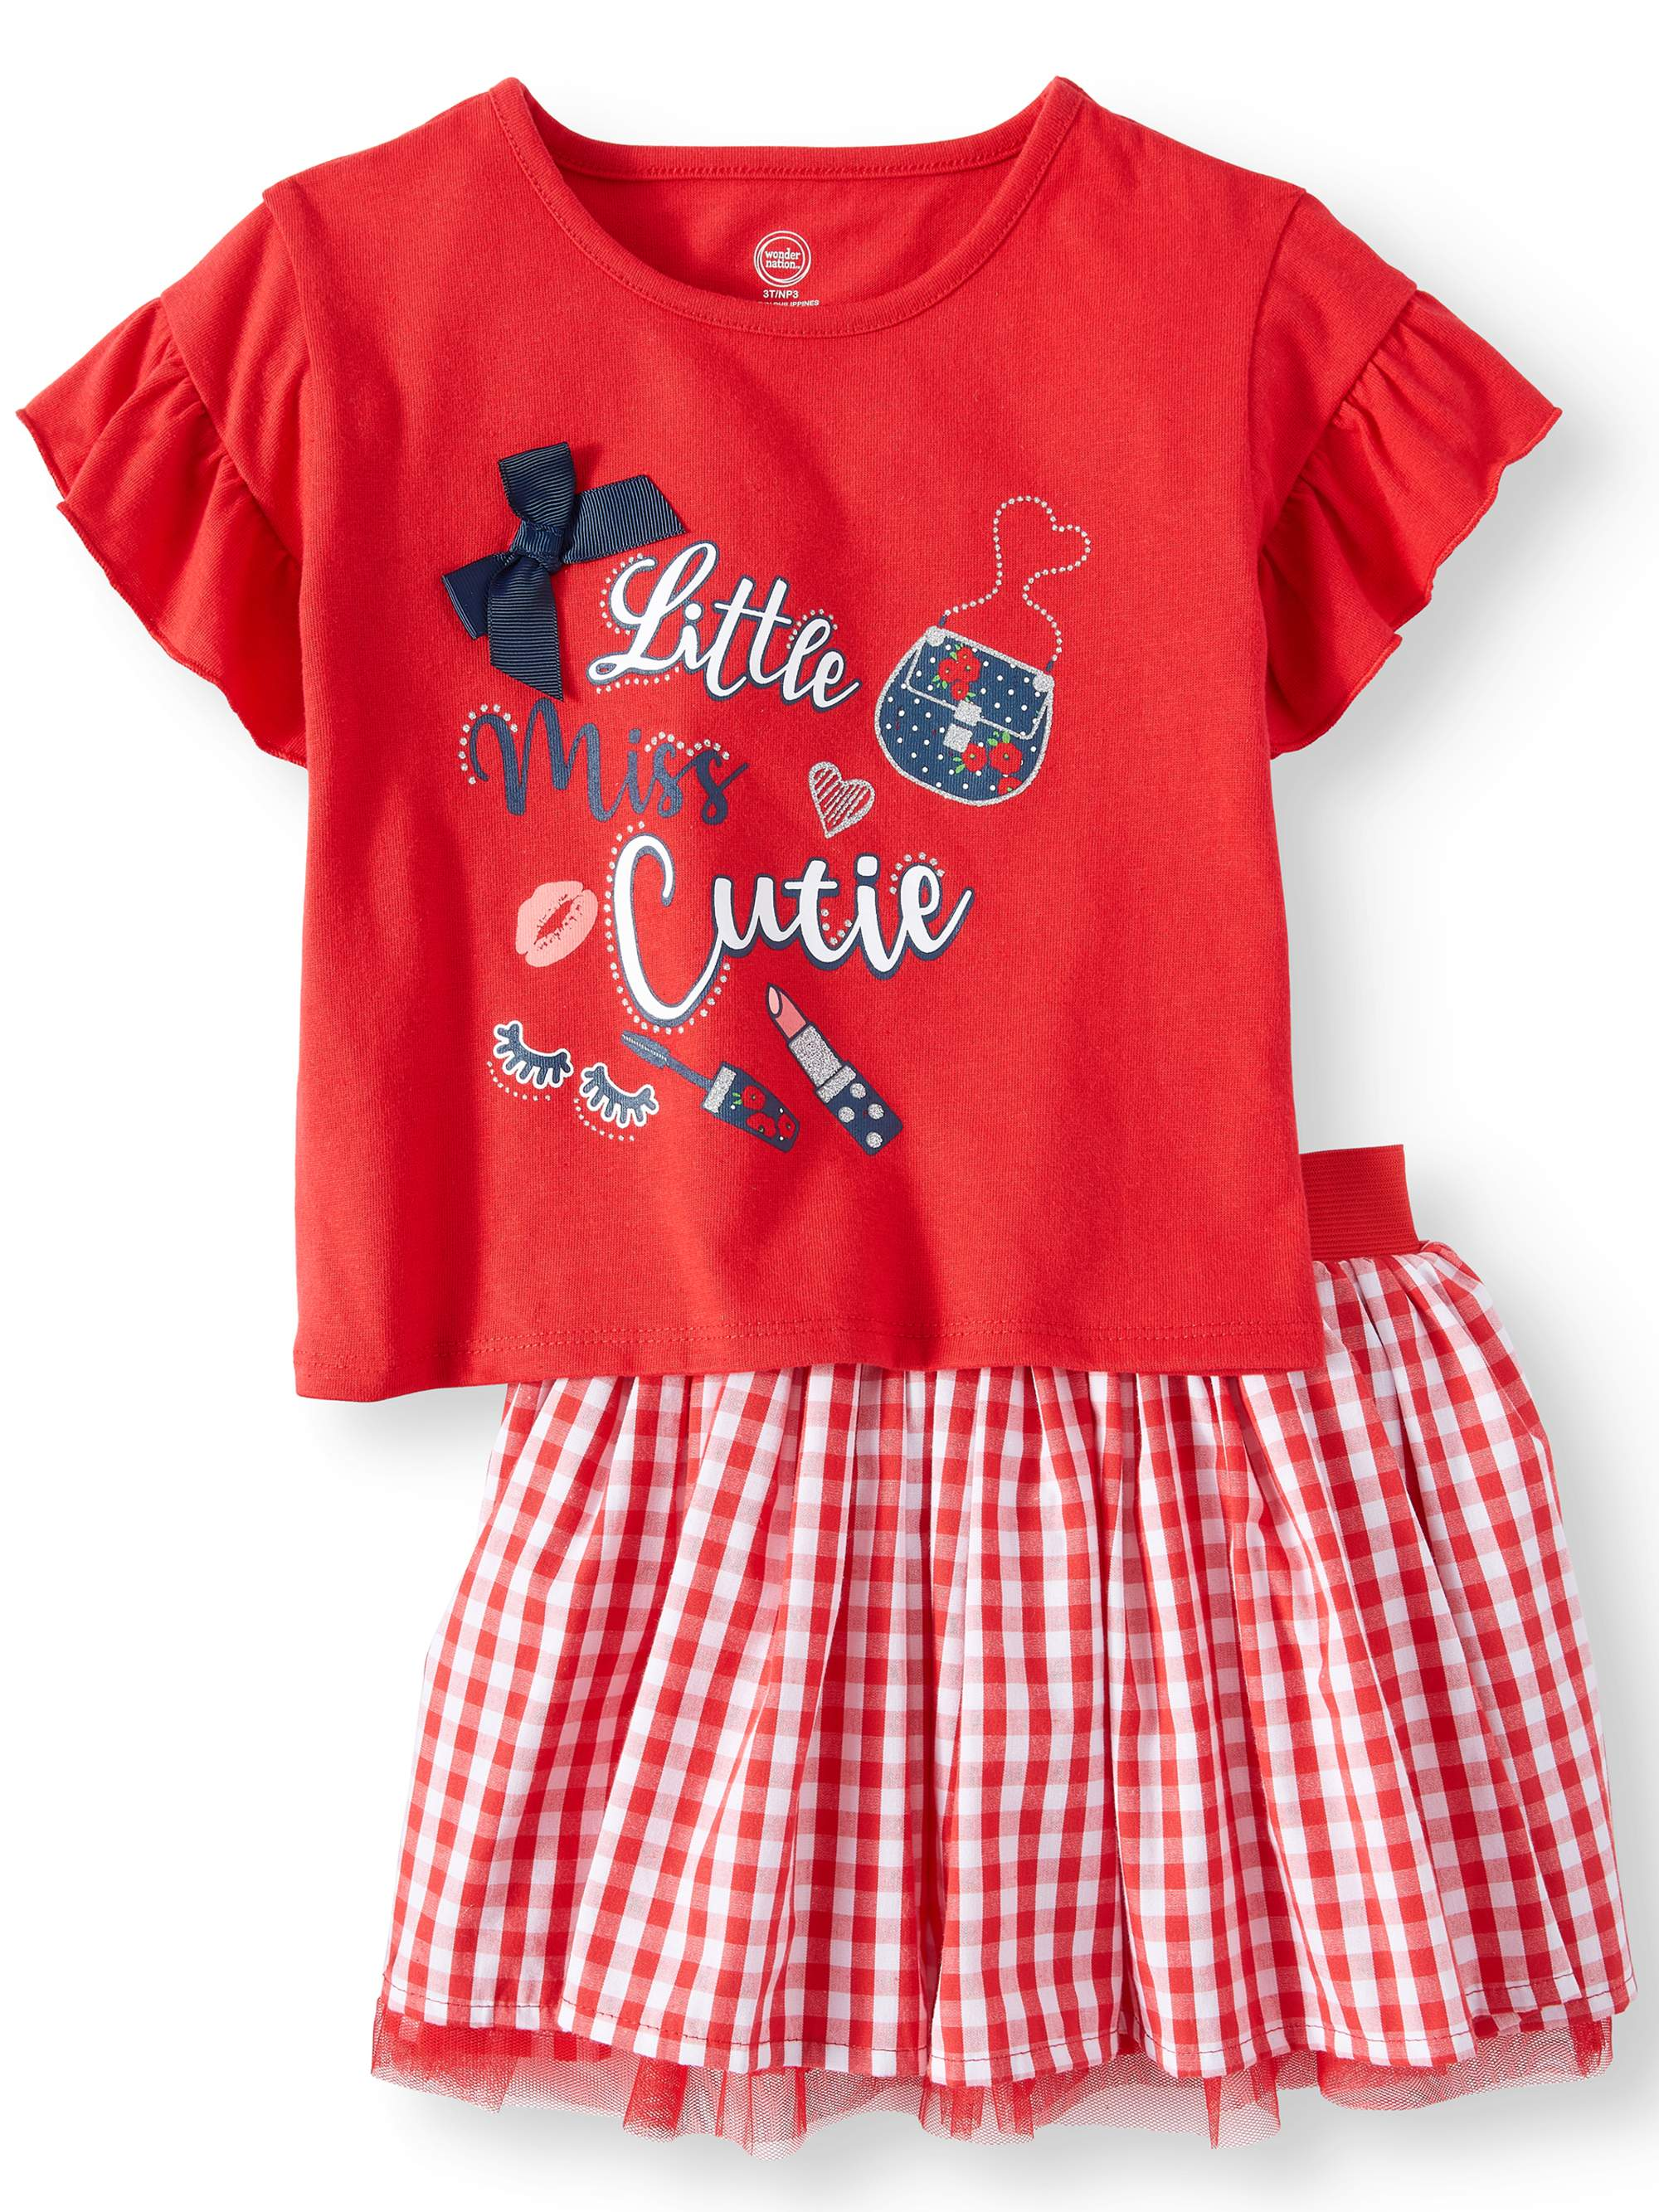 Ruffle Sleeve Top & Reversible Skirt, 2pc Outfit Set (Toddler Girls)